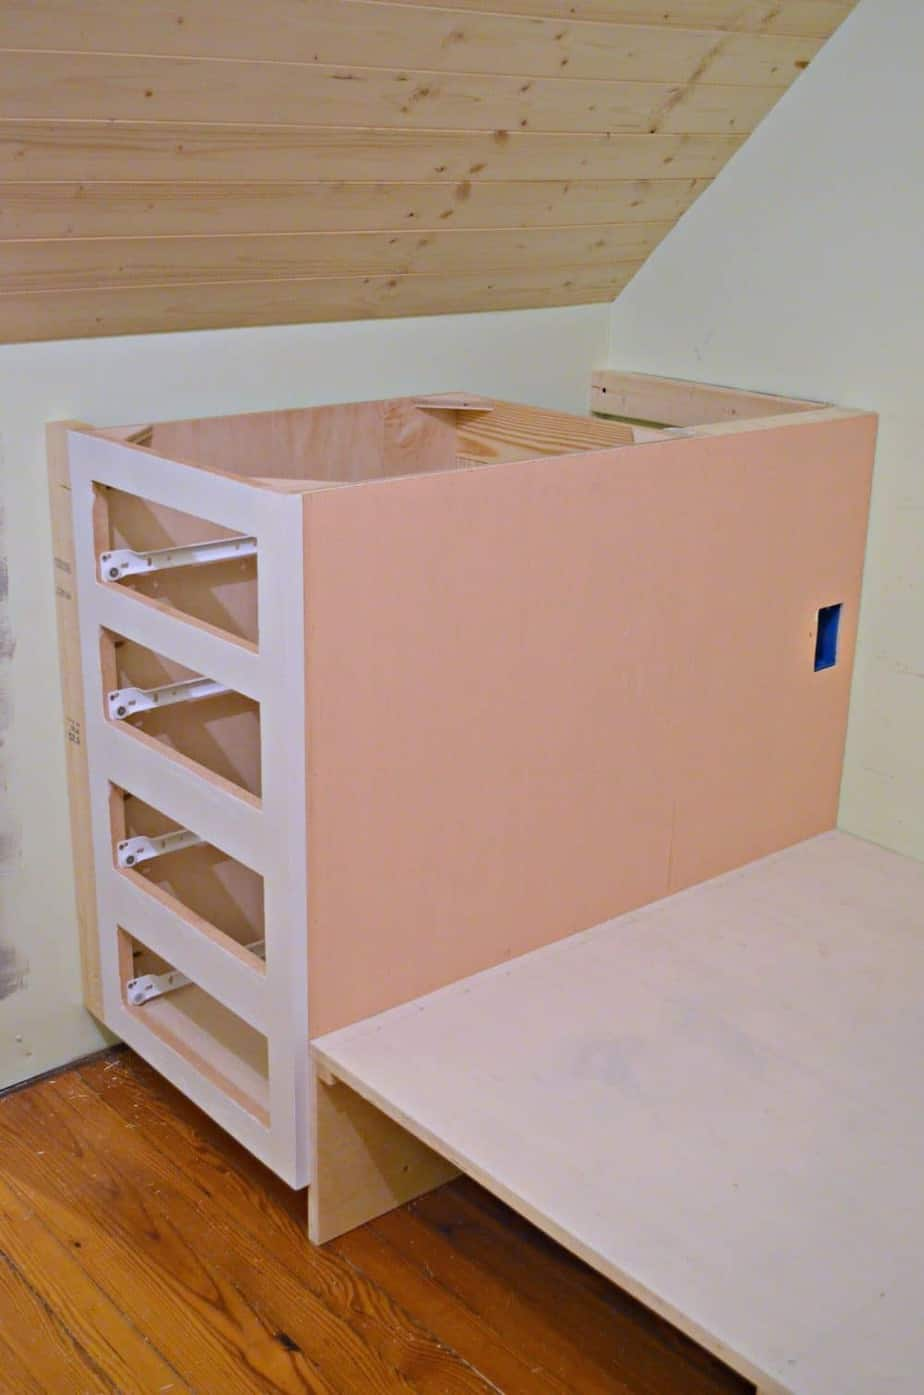 How to make a built-in bed using stock kitchen cabinets